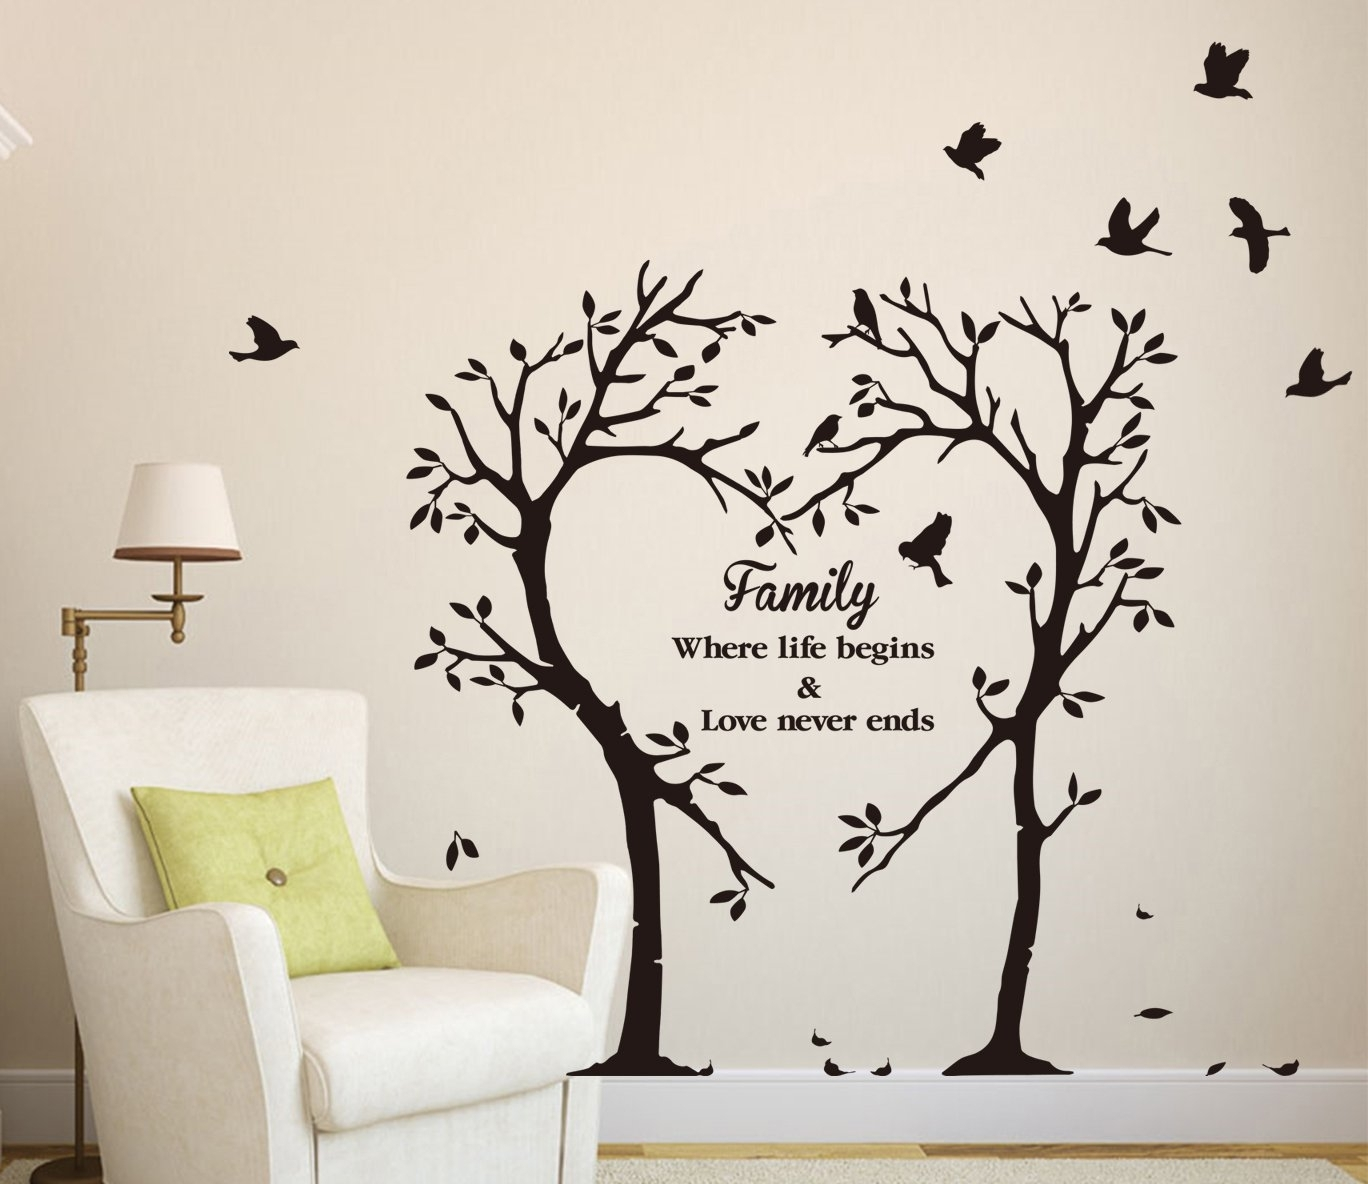 Large Family Inspirational Love Tree Wall Art Sticker, Wall Sticker Throughout Most Recent Tree Wall Art (Gallery 9 of 15)